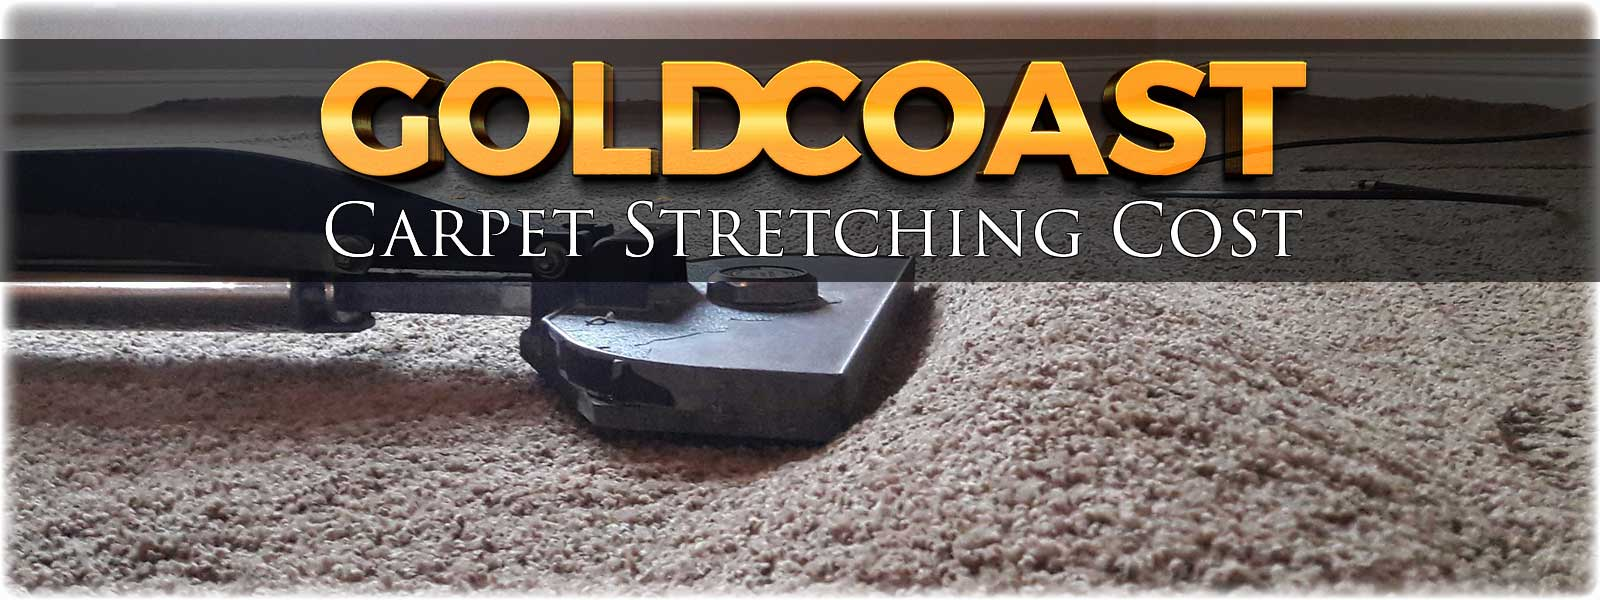 Carpet Stretching Cost